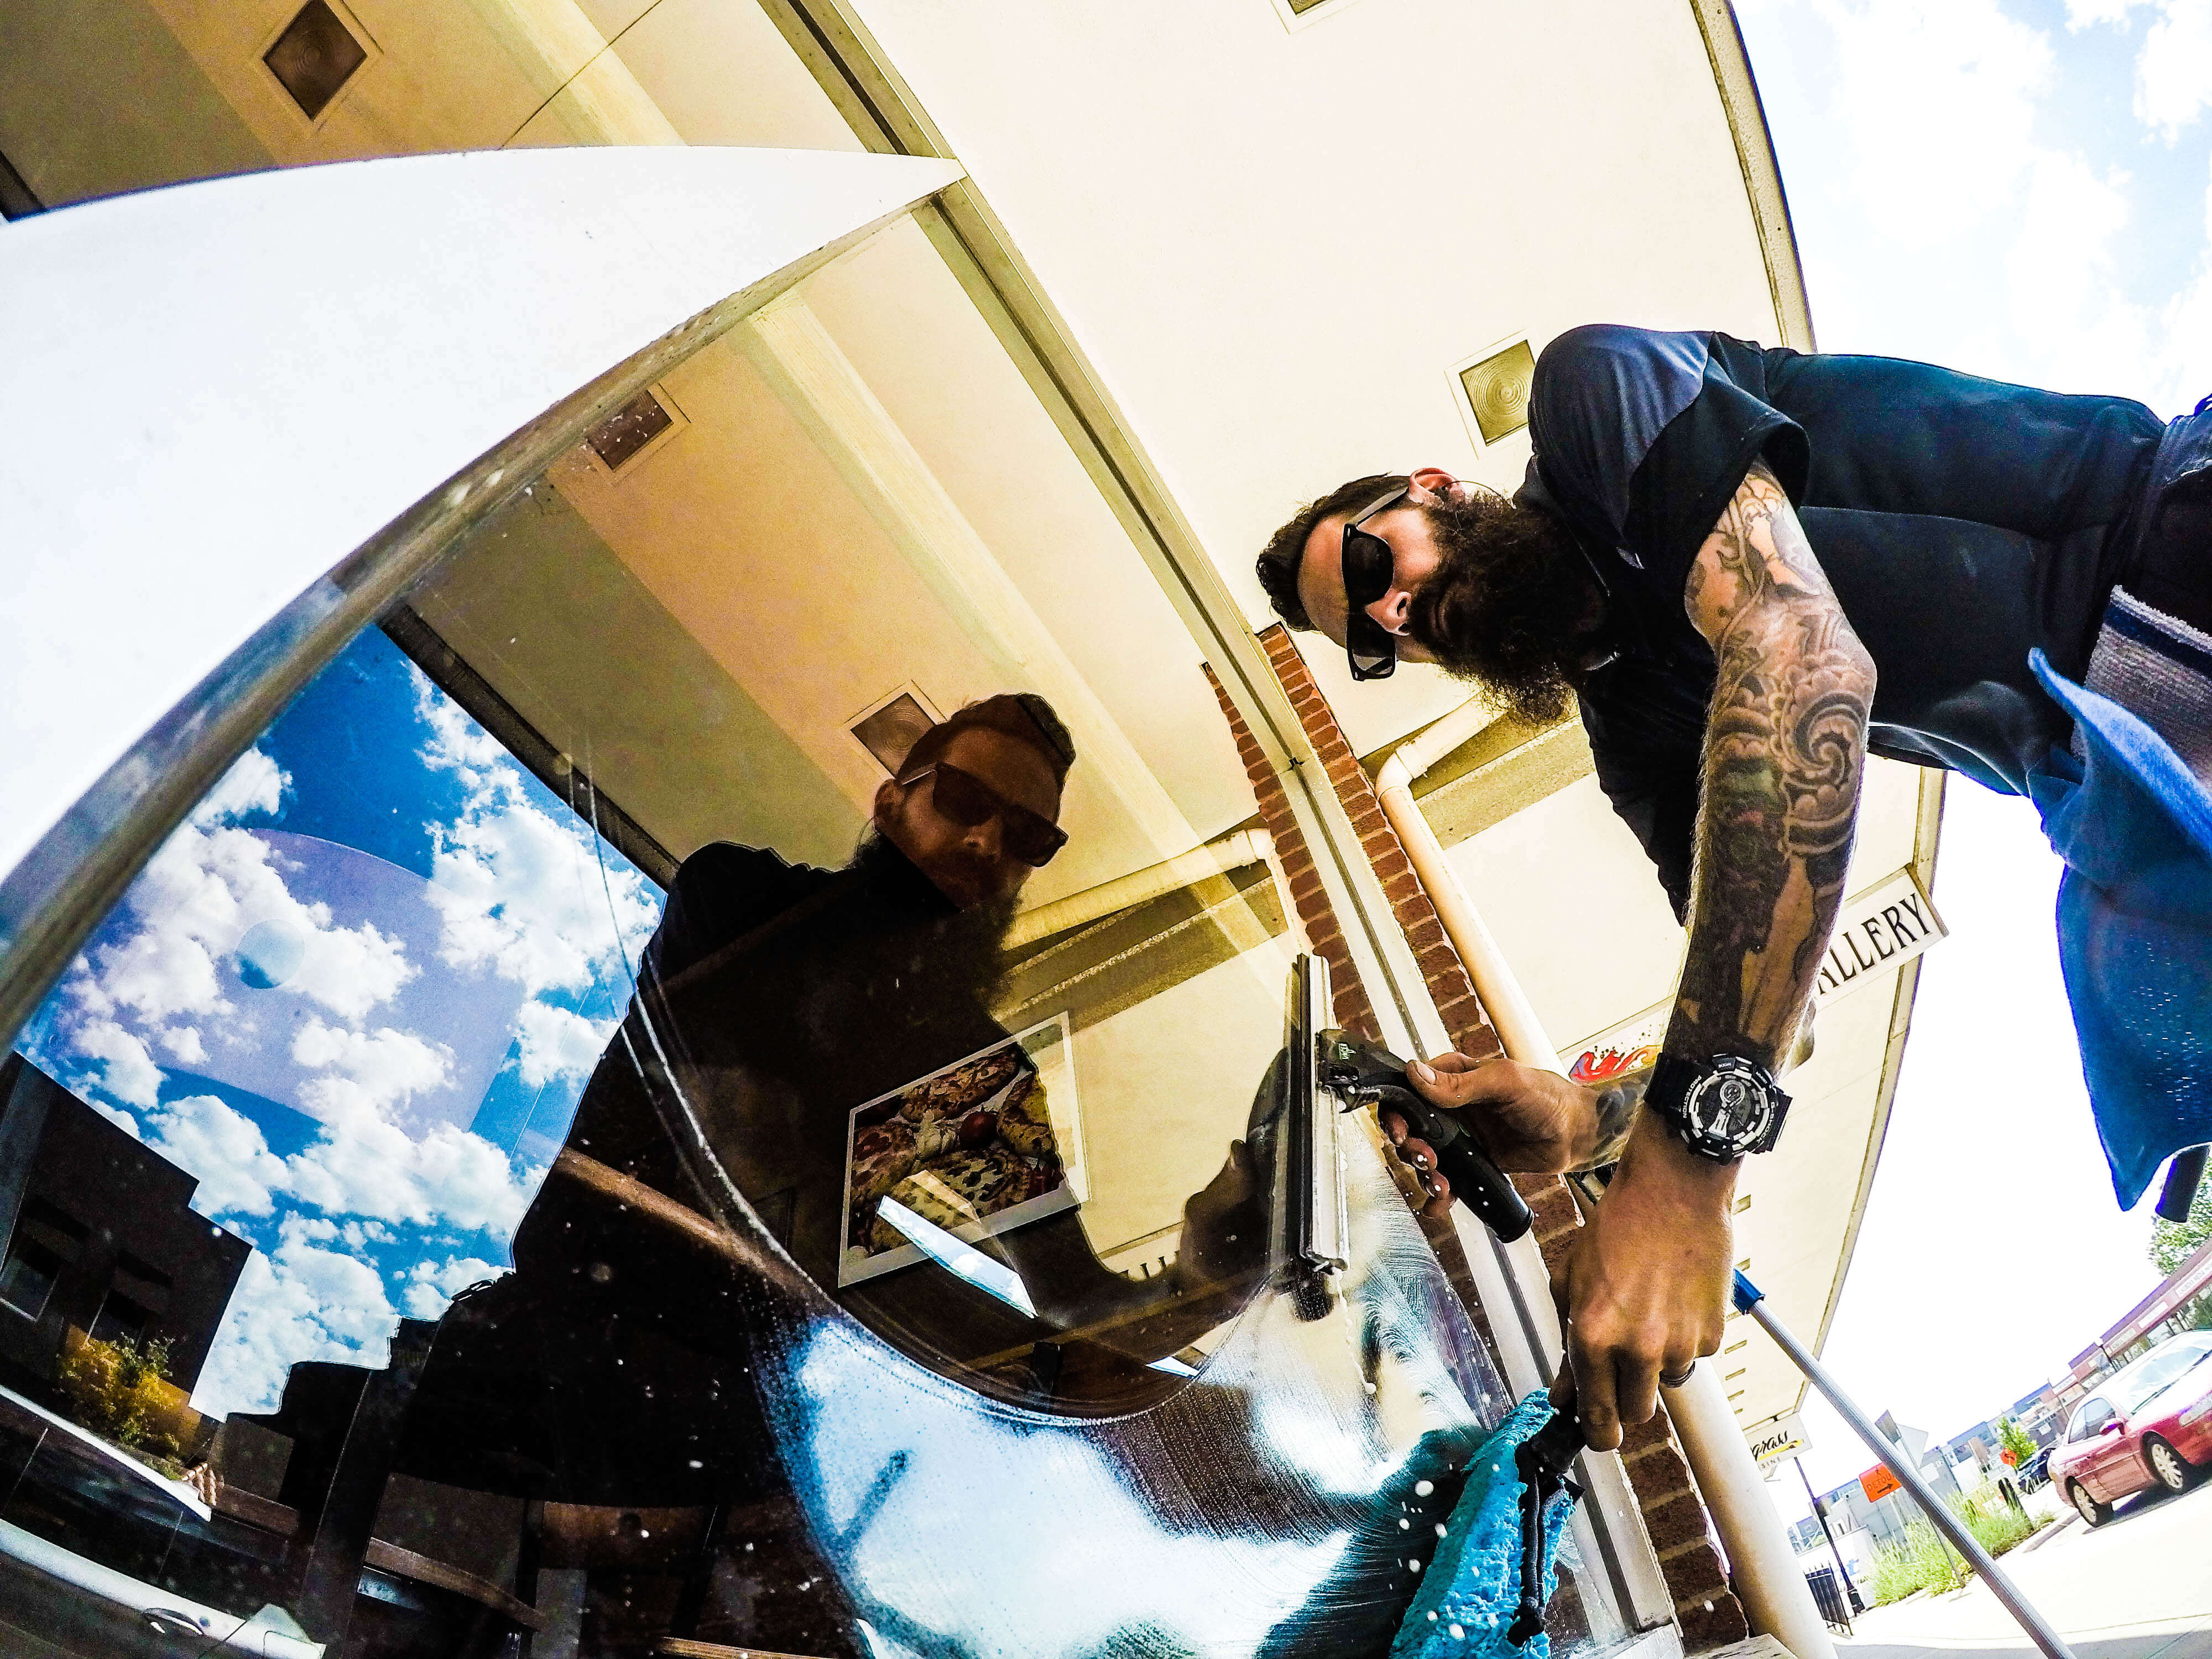 Storefront Window Cleaning Service in Kansas City, MO